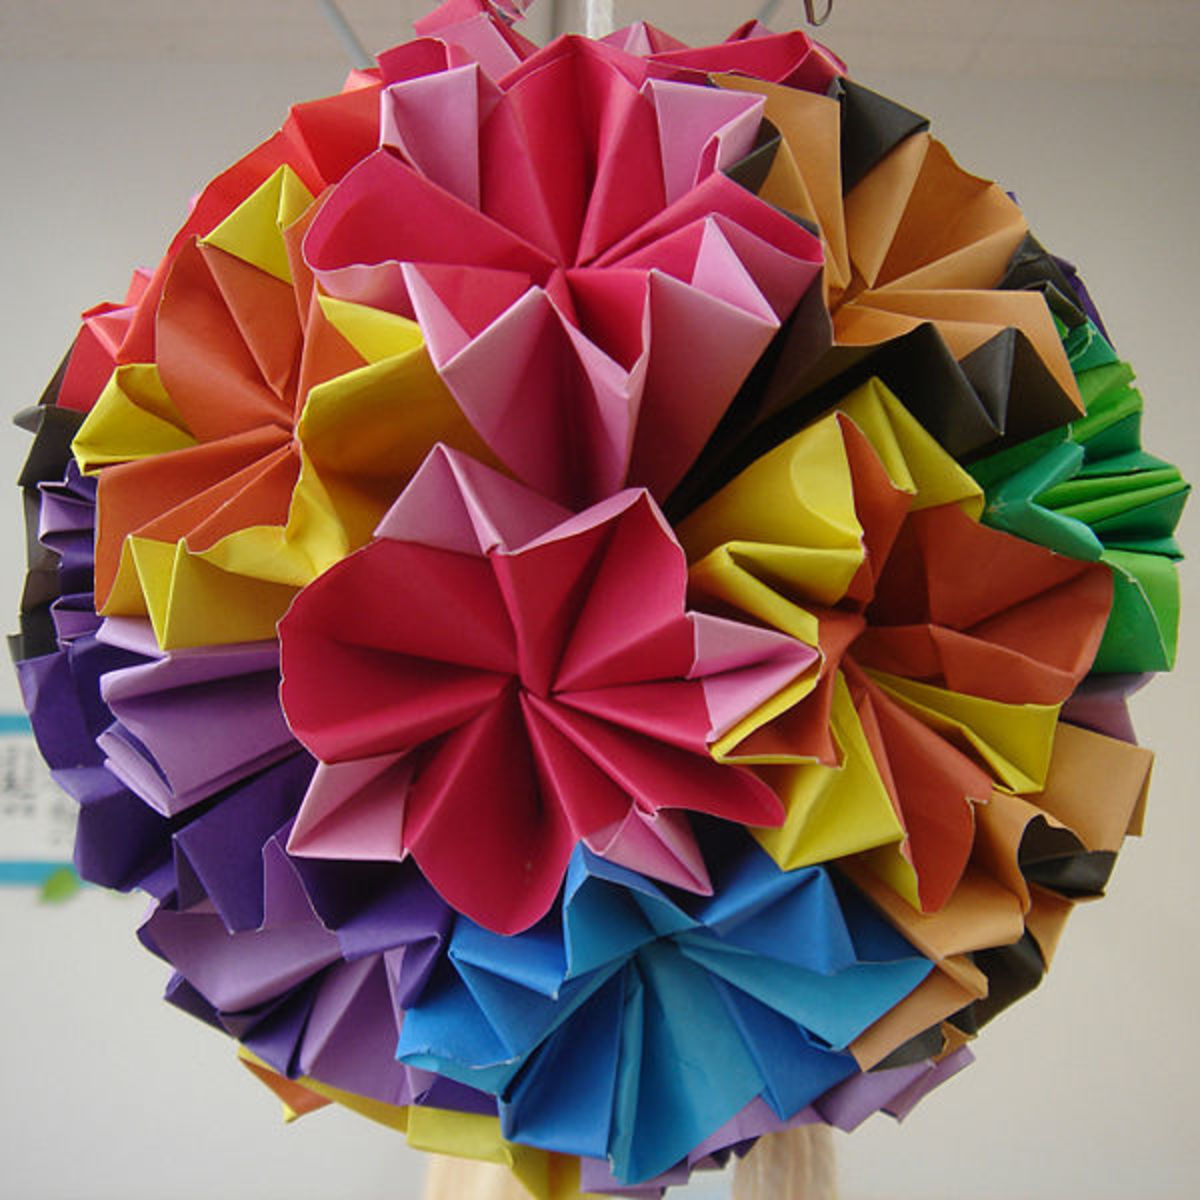 How to Origami for Beginners This is a great site with a nice bubbly